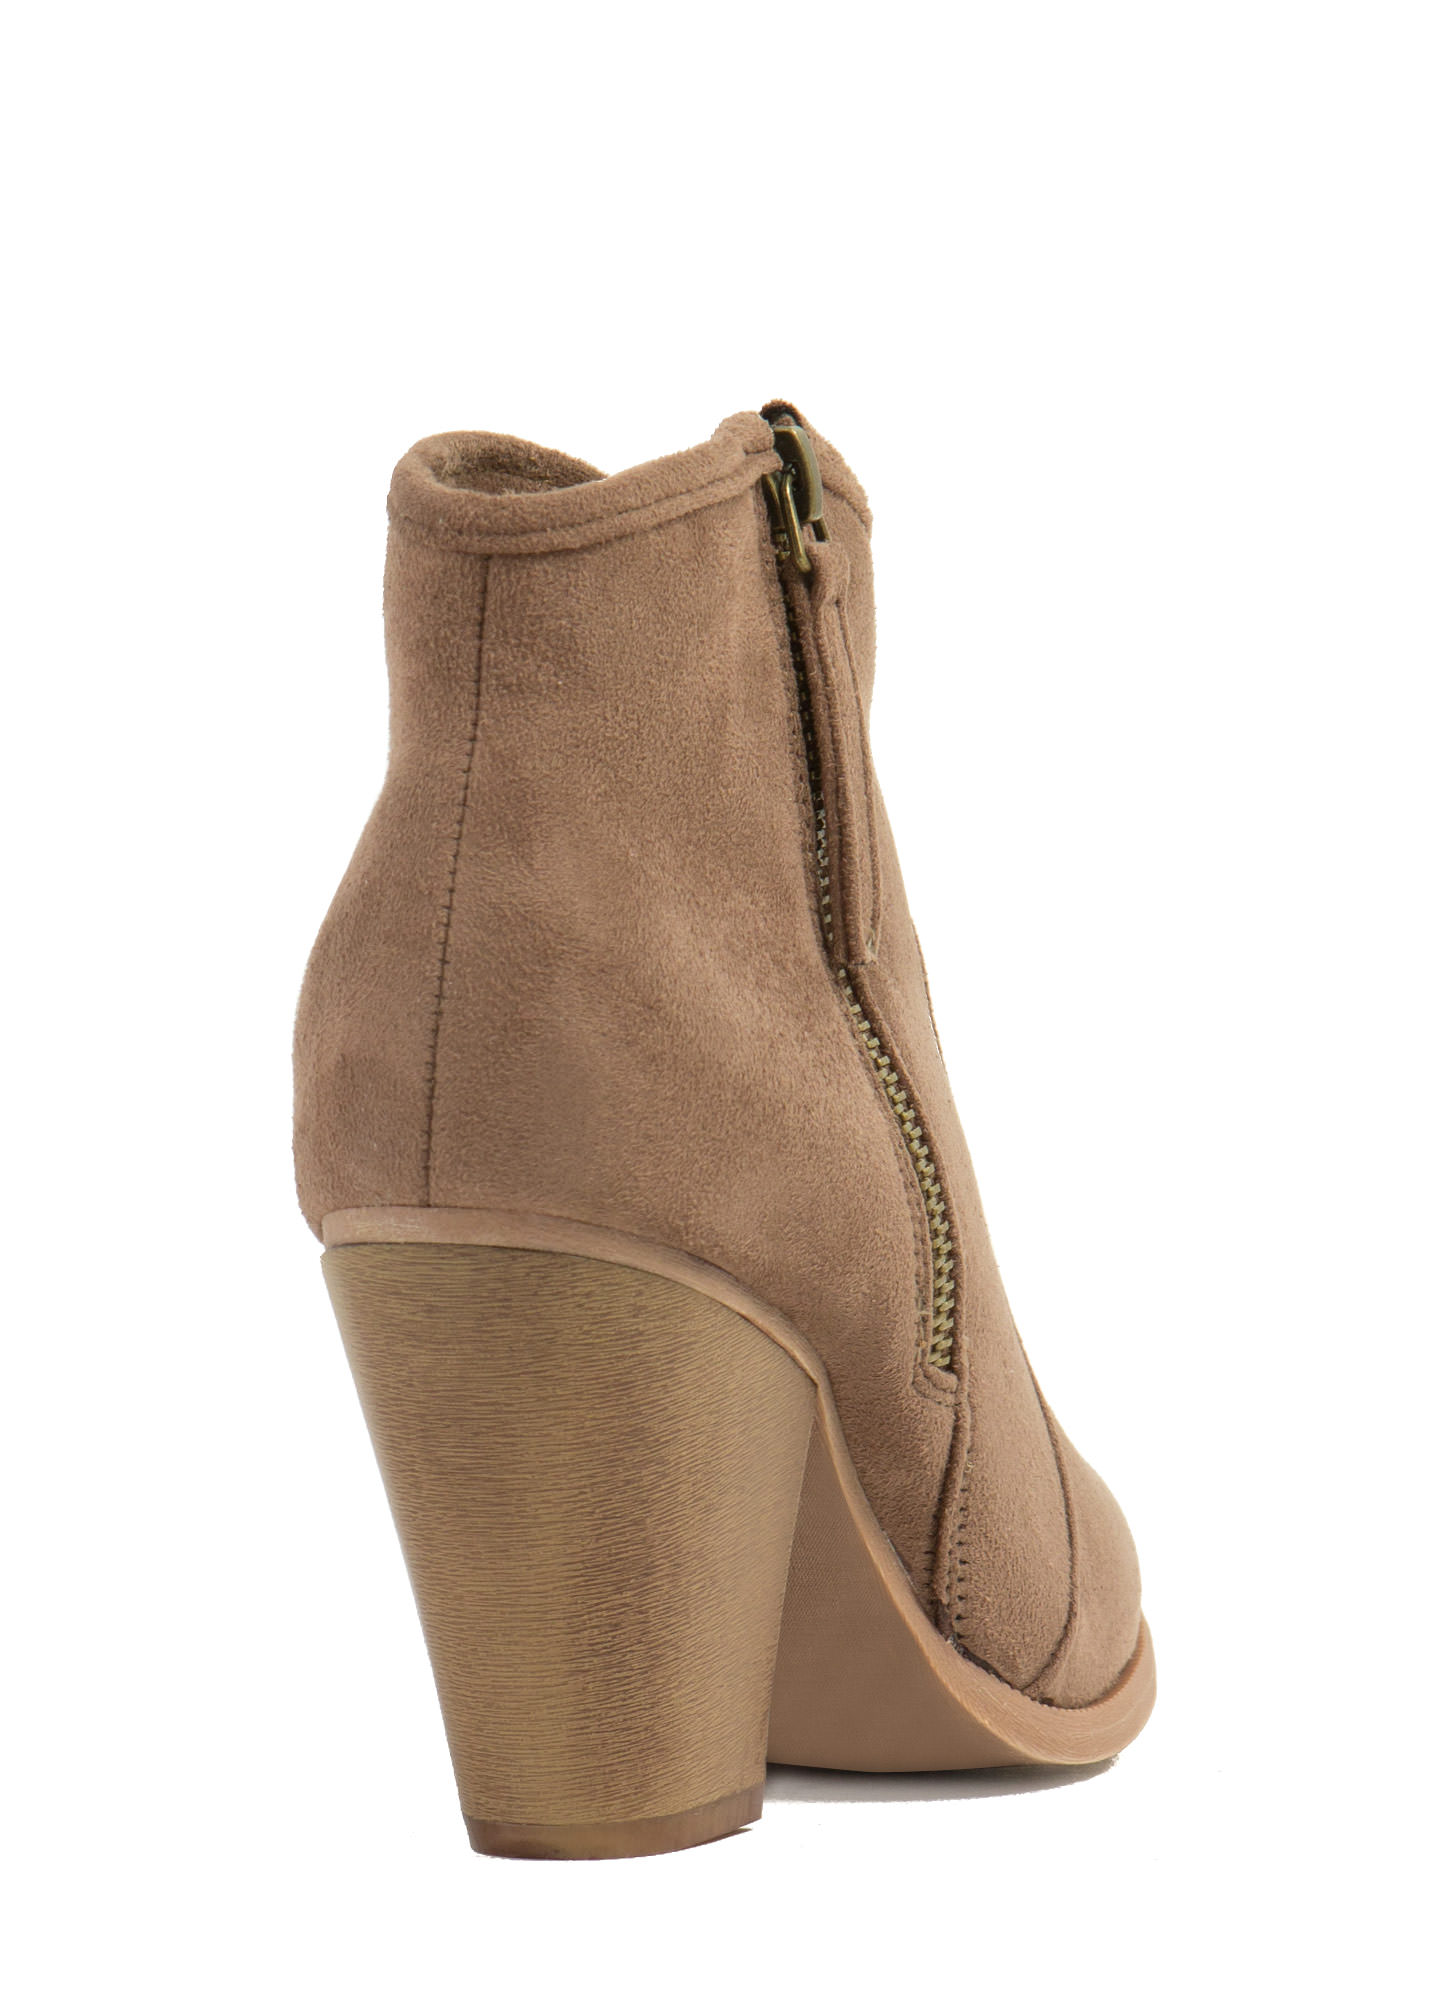 Zipped To The Top Chunky Booties TAUPE